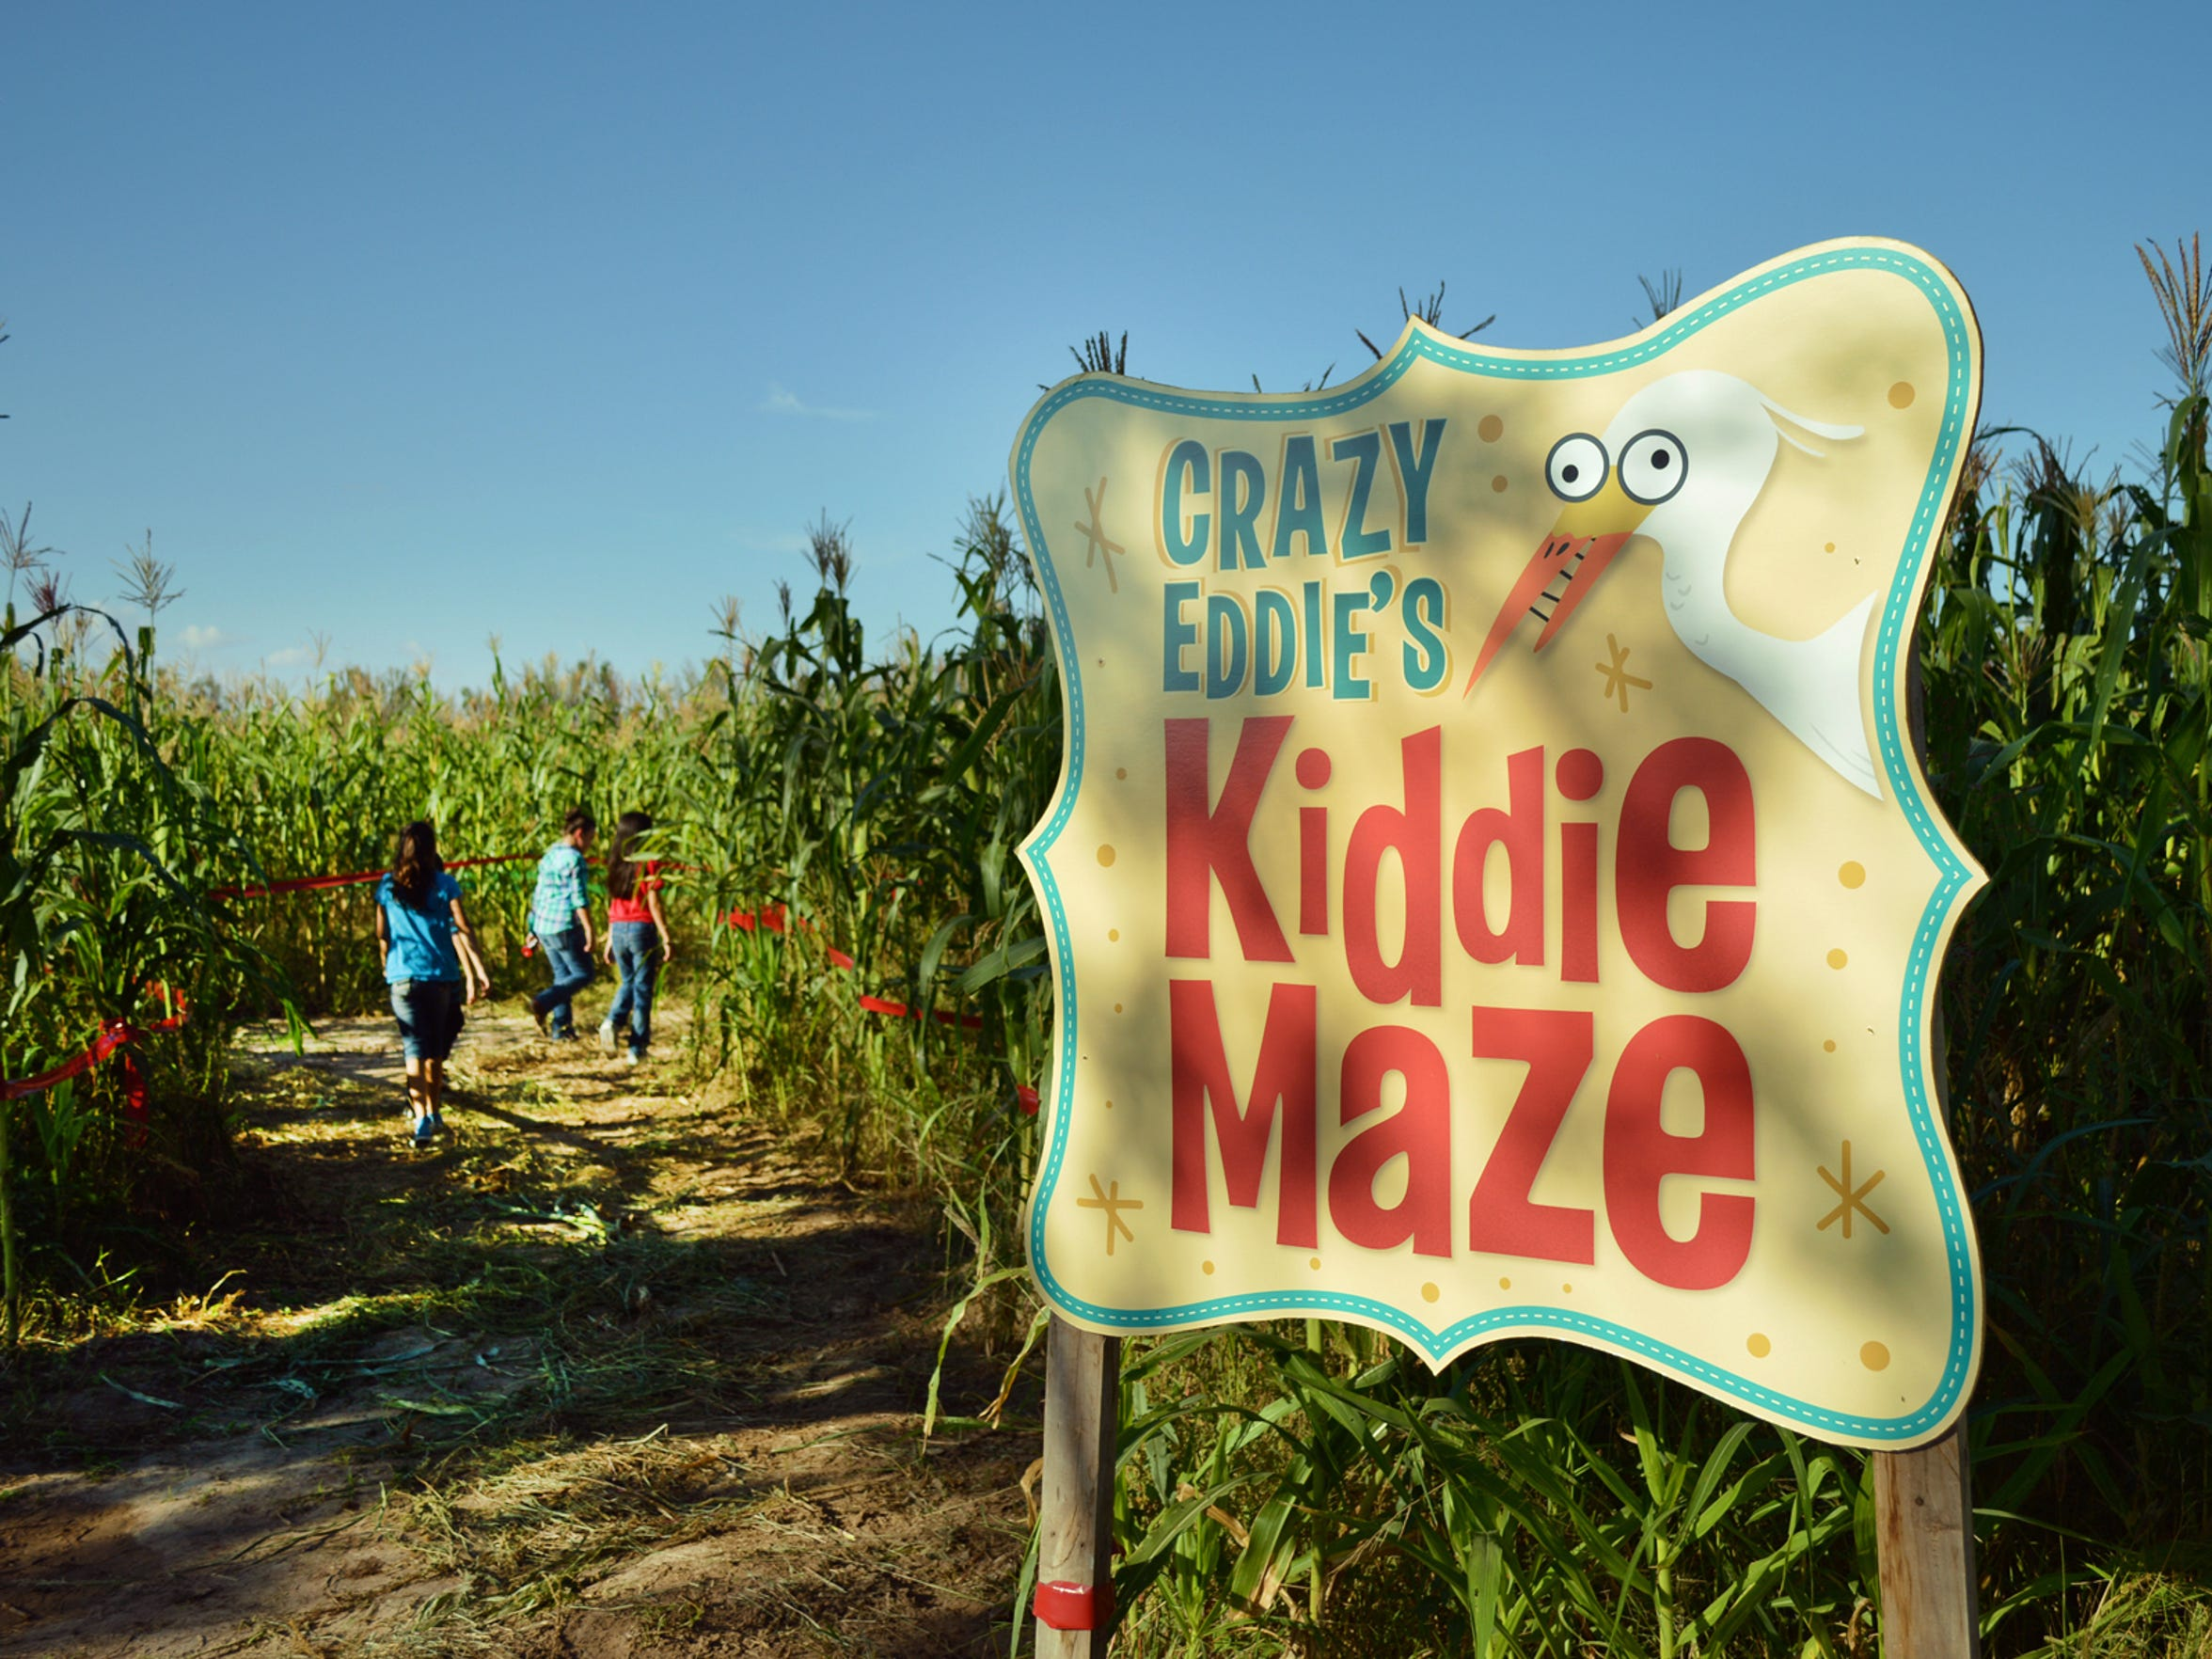 Eddie the Egret Kiddie Maze is geared towards younger guests at El Paso's Cornmaze.